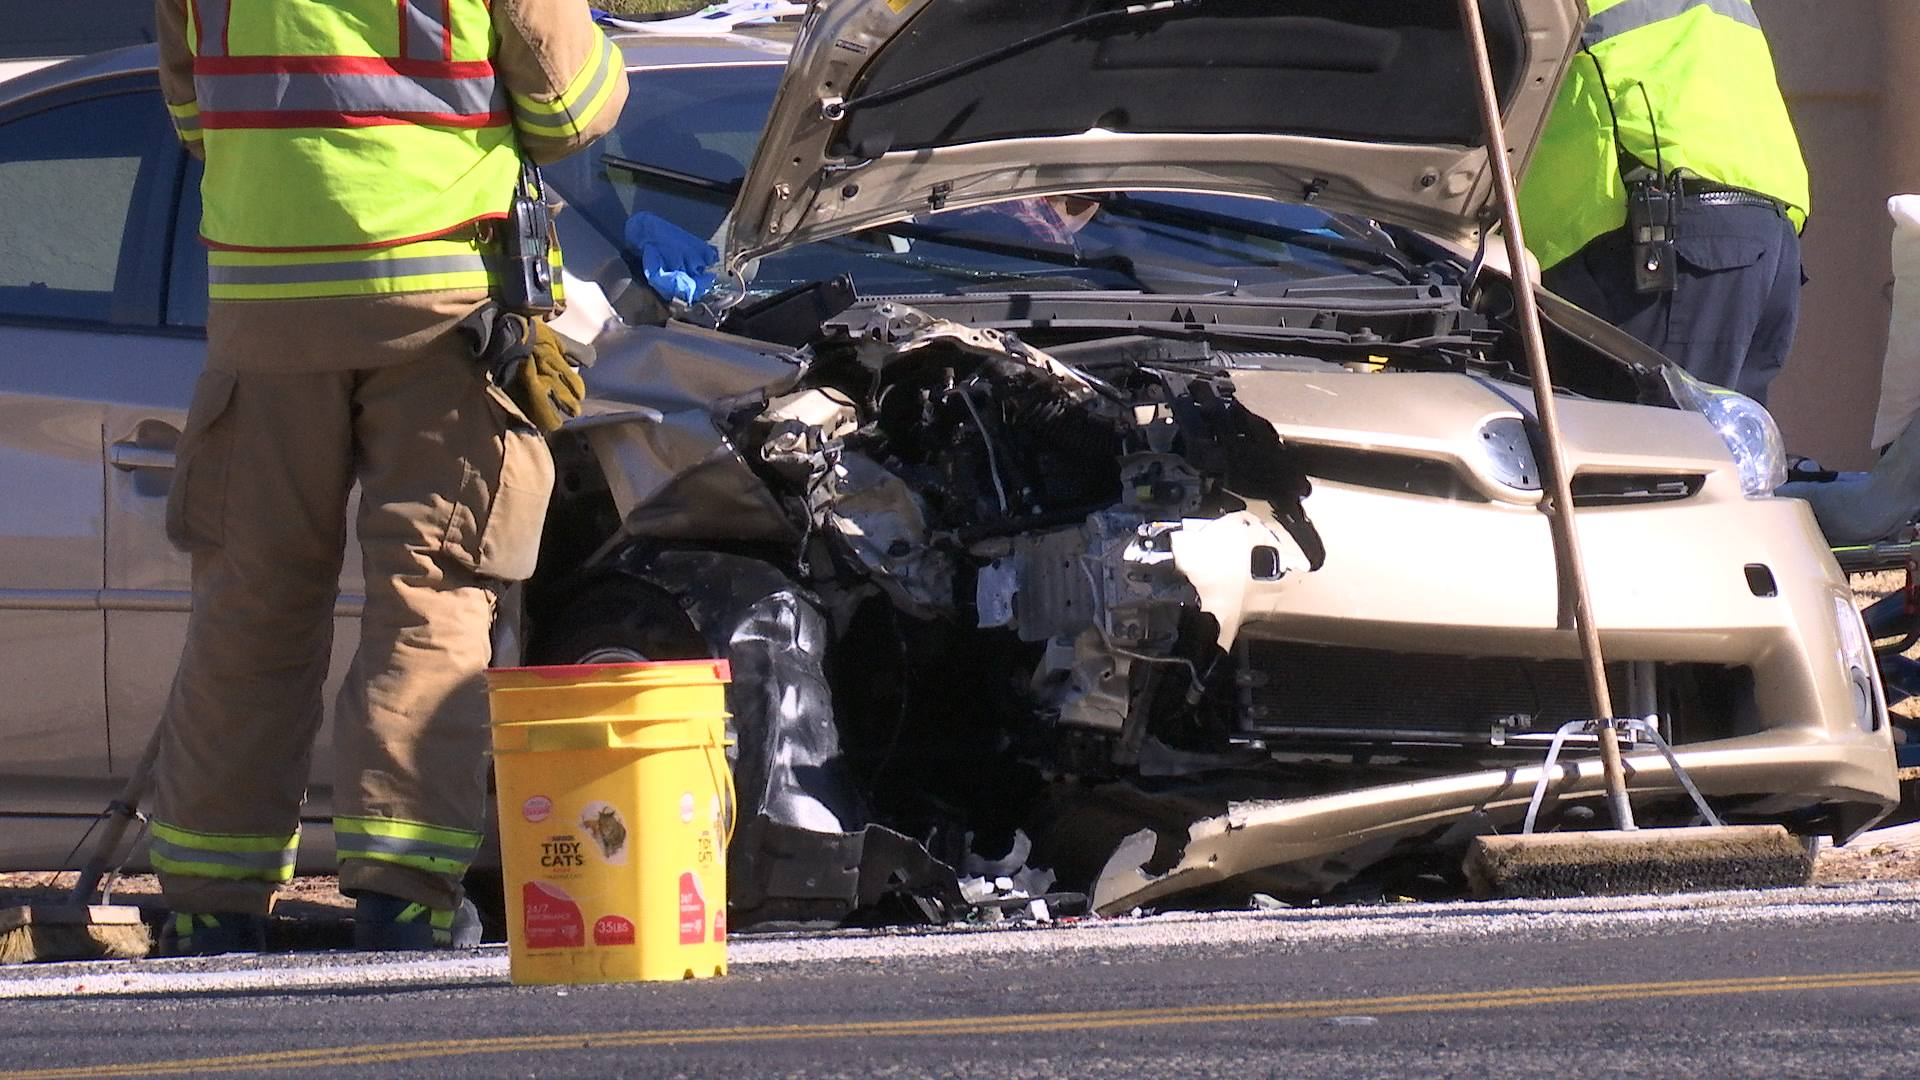 A gold Prius sits on the side of the road after a collision on Bloomington Dr. S. Saturday morning that severely damaged two cars and one driver was taken to the hospital. St. George, Utah, December 3, 2016 | Photo by Sheldon Demke, St. George News